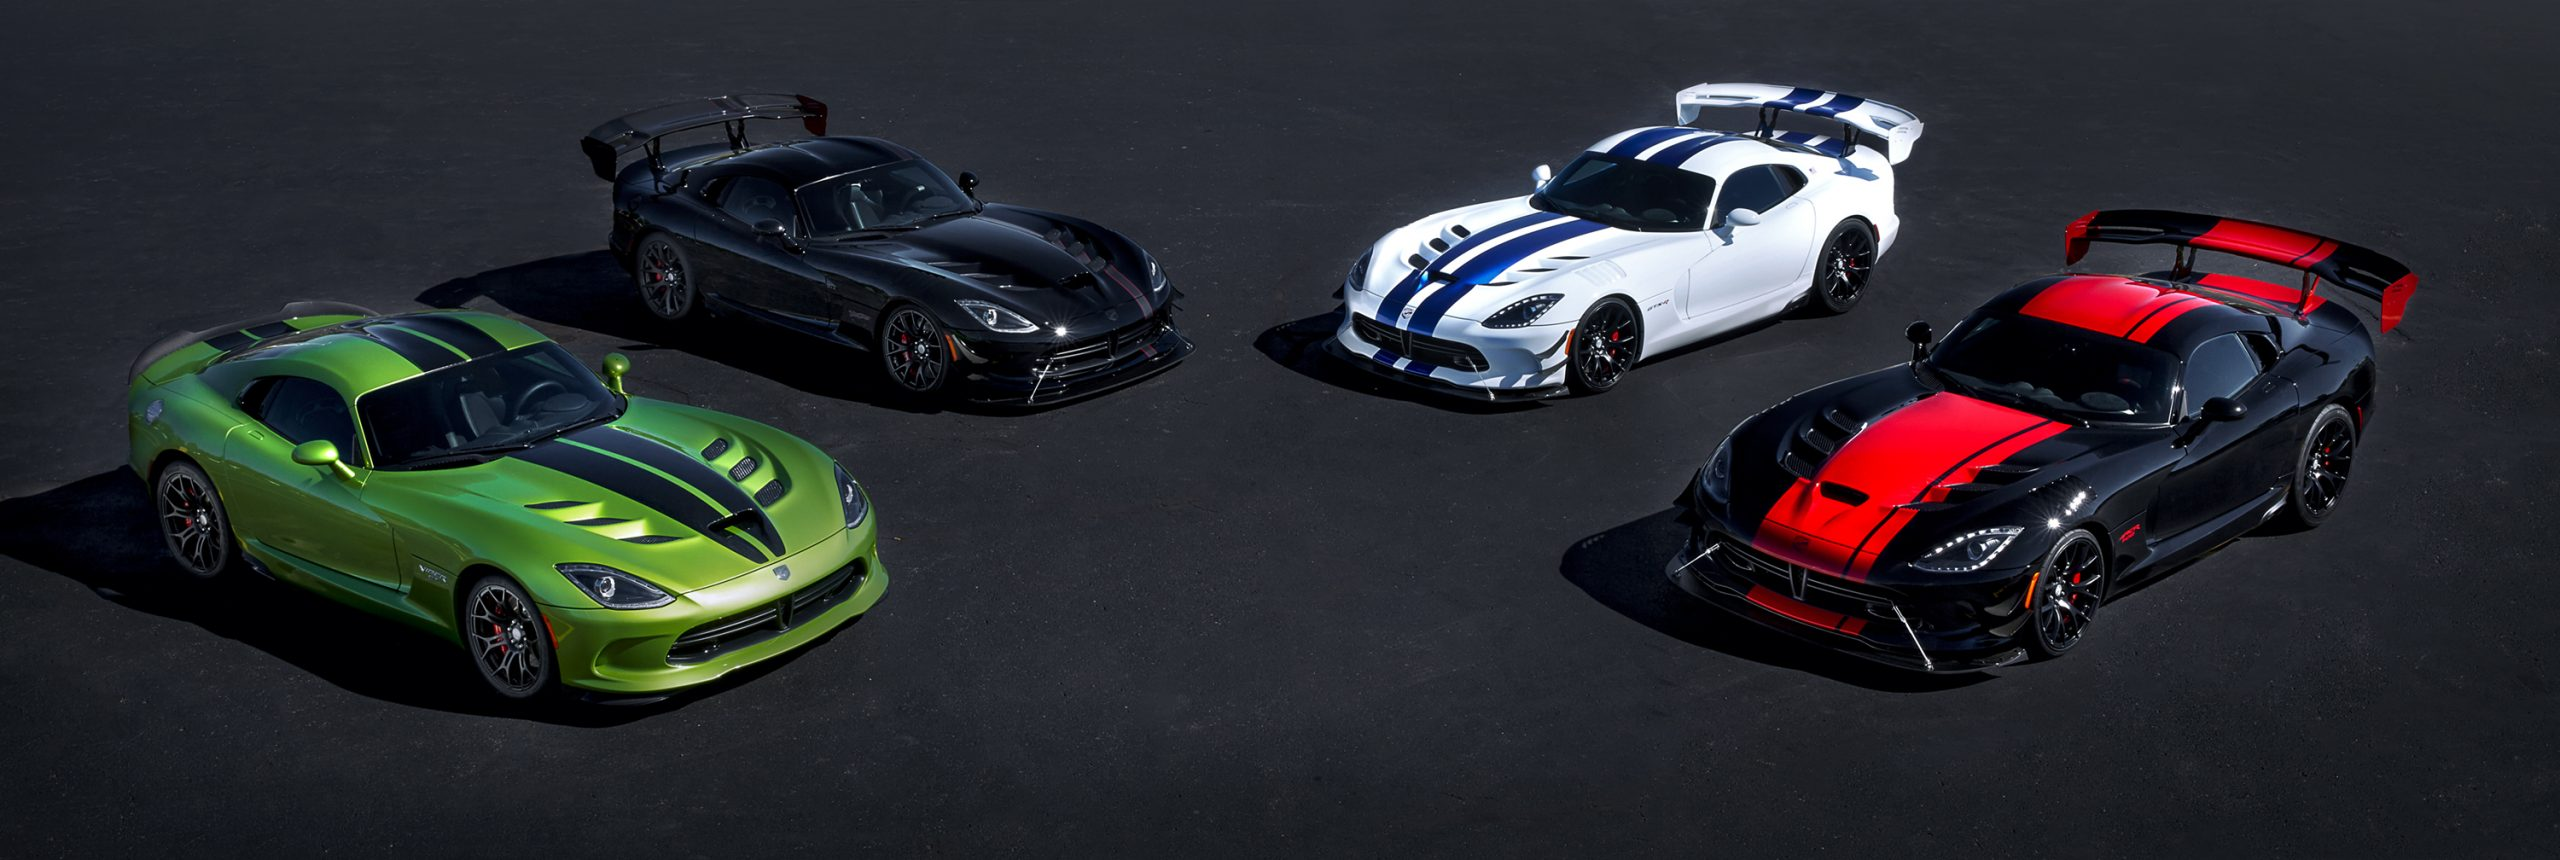 5 Limited Edition Vipers to Wrap up 25 Years of Production